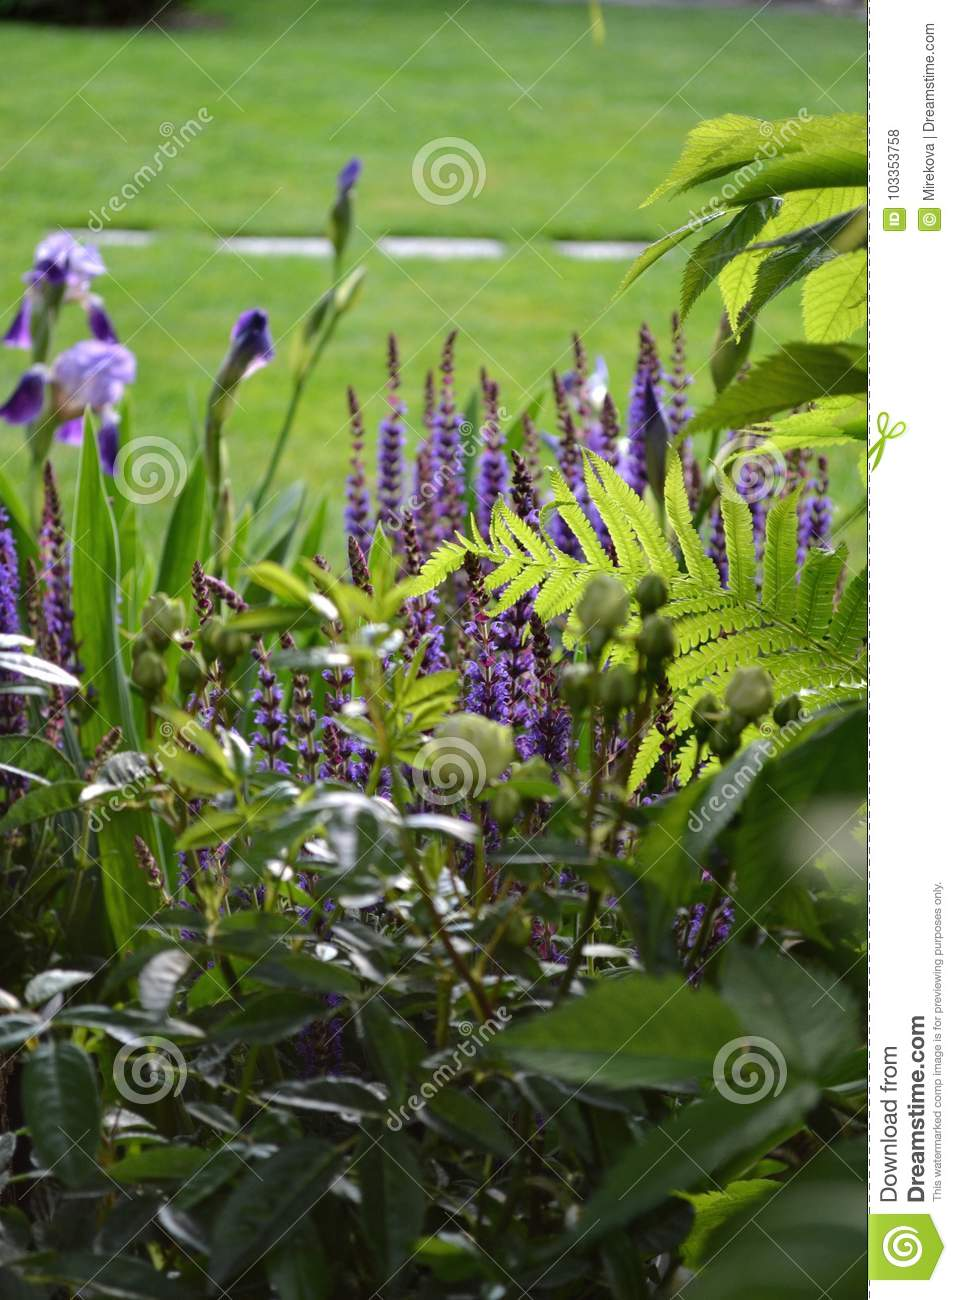 Spring Fresh Flowering Garden With Perennials Stock Photo Image Of